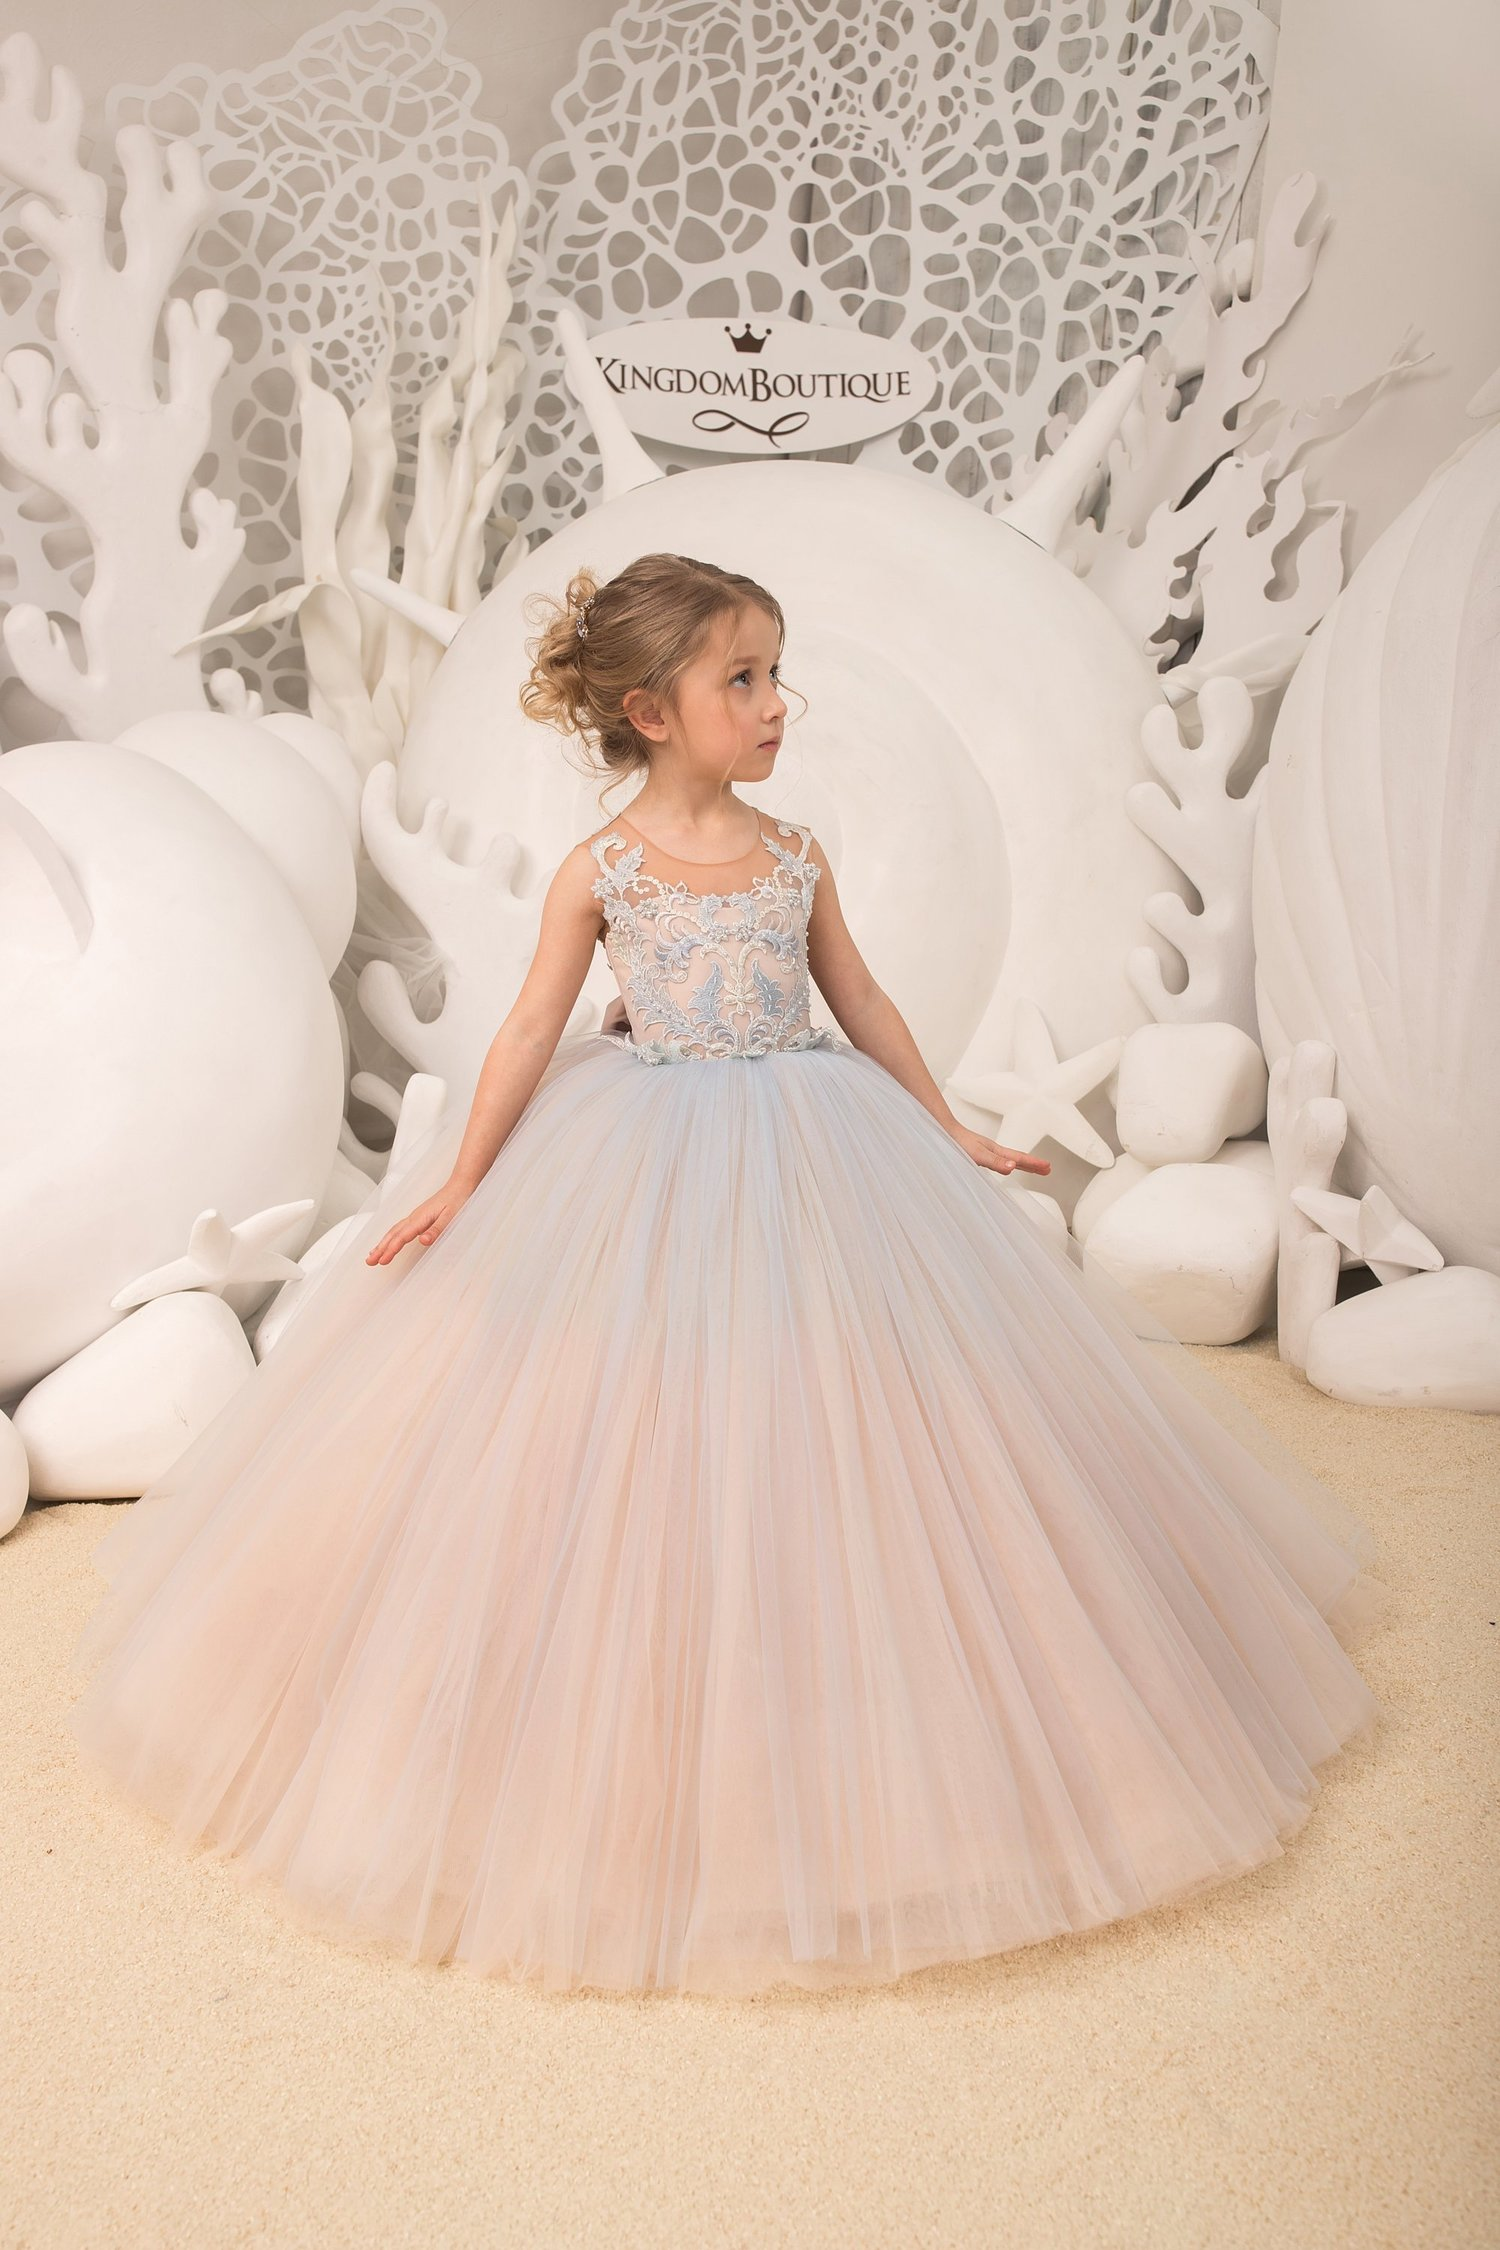 0158b8a5e216d Light blue and Cappuccino Flower Girl Dress Birthday Wedding Party Holiday  Bridesmaid ,.jpg